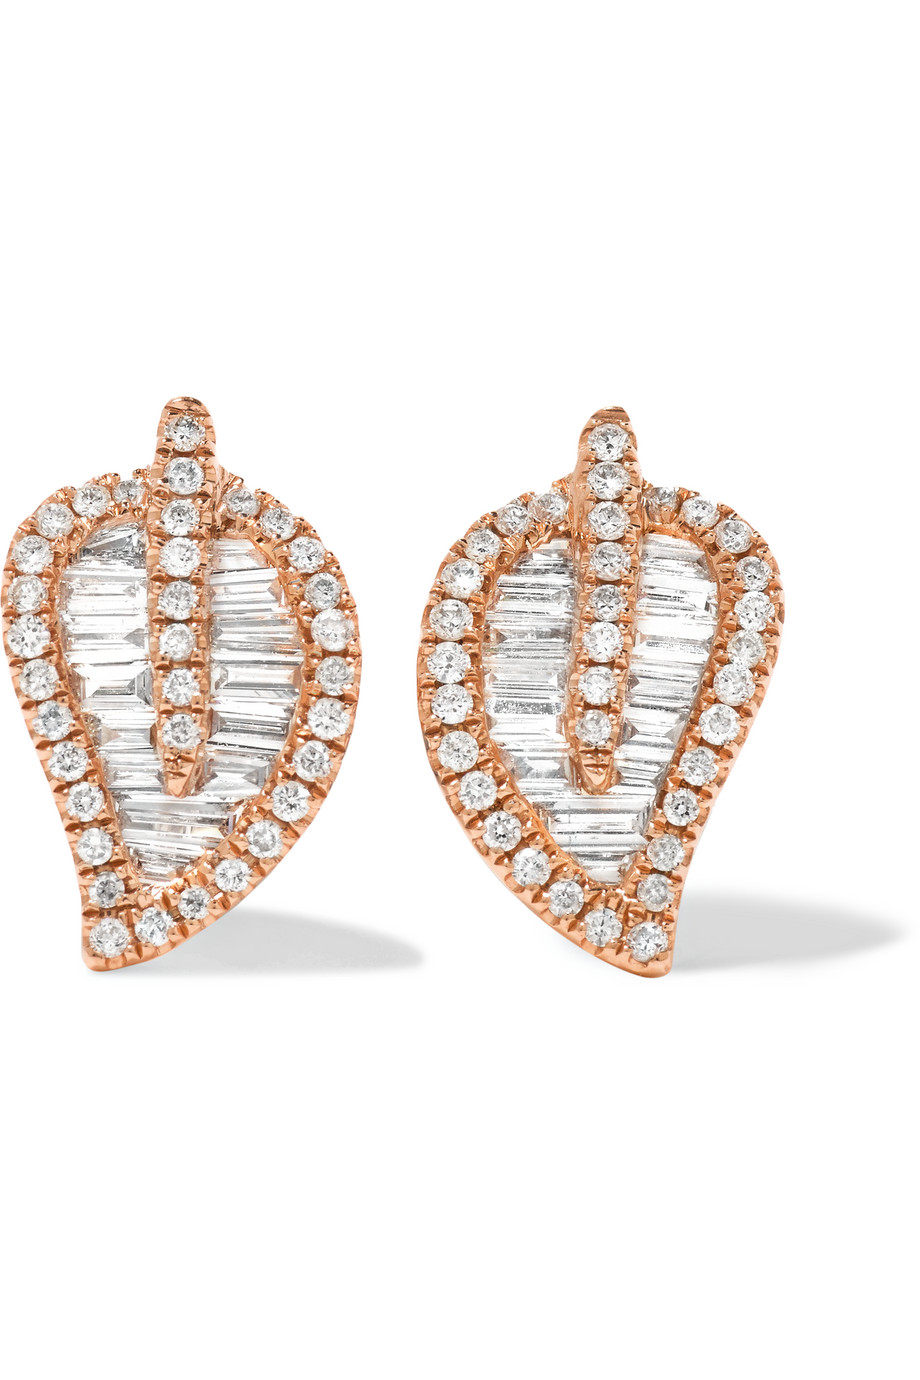 Anita Ko Leaf 18-Karat Rose Gold Diamond Earrings, Women's